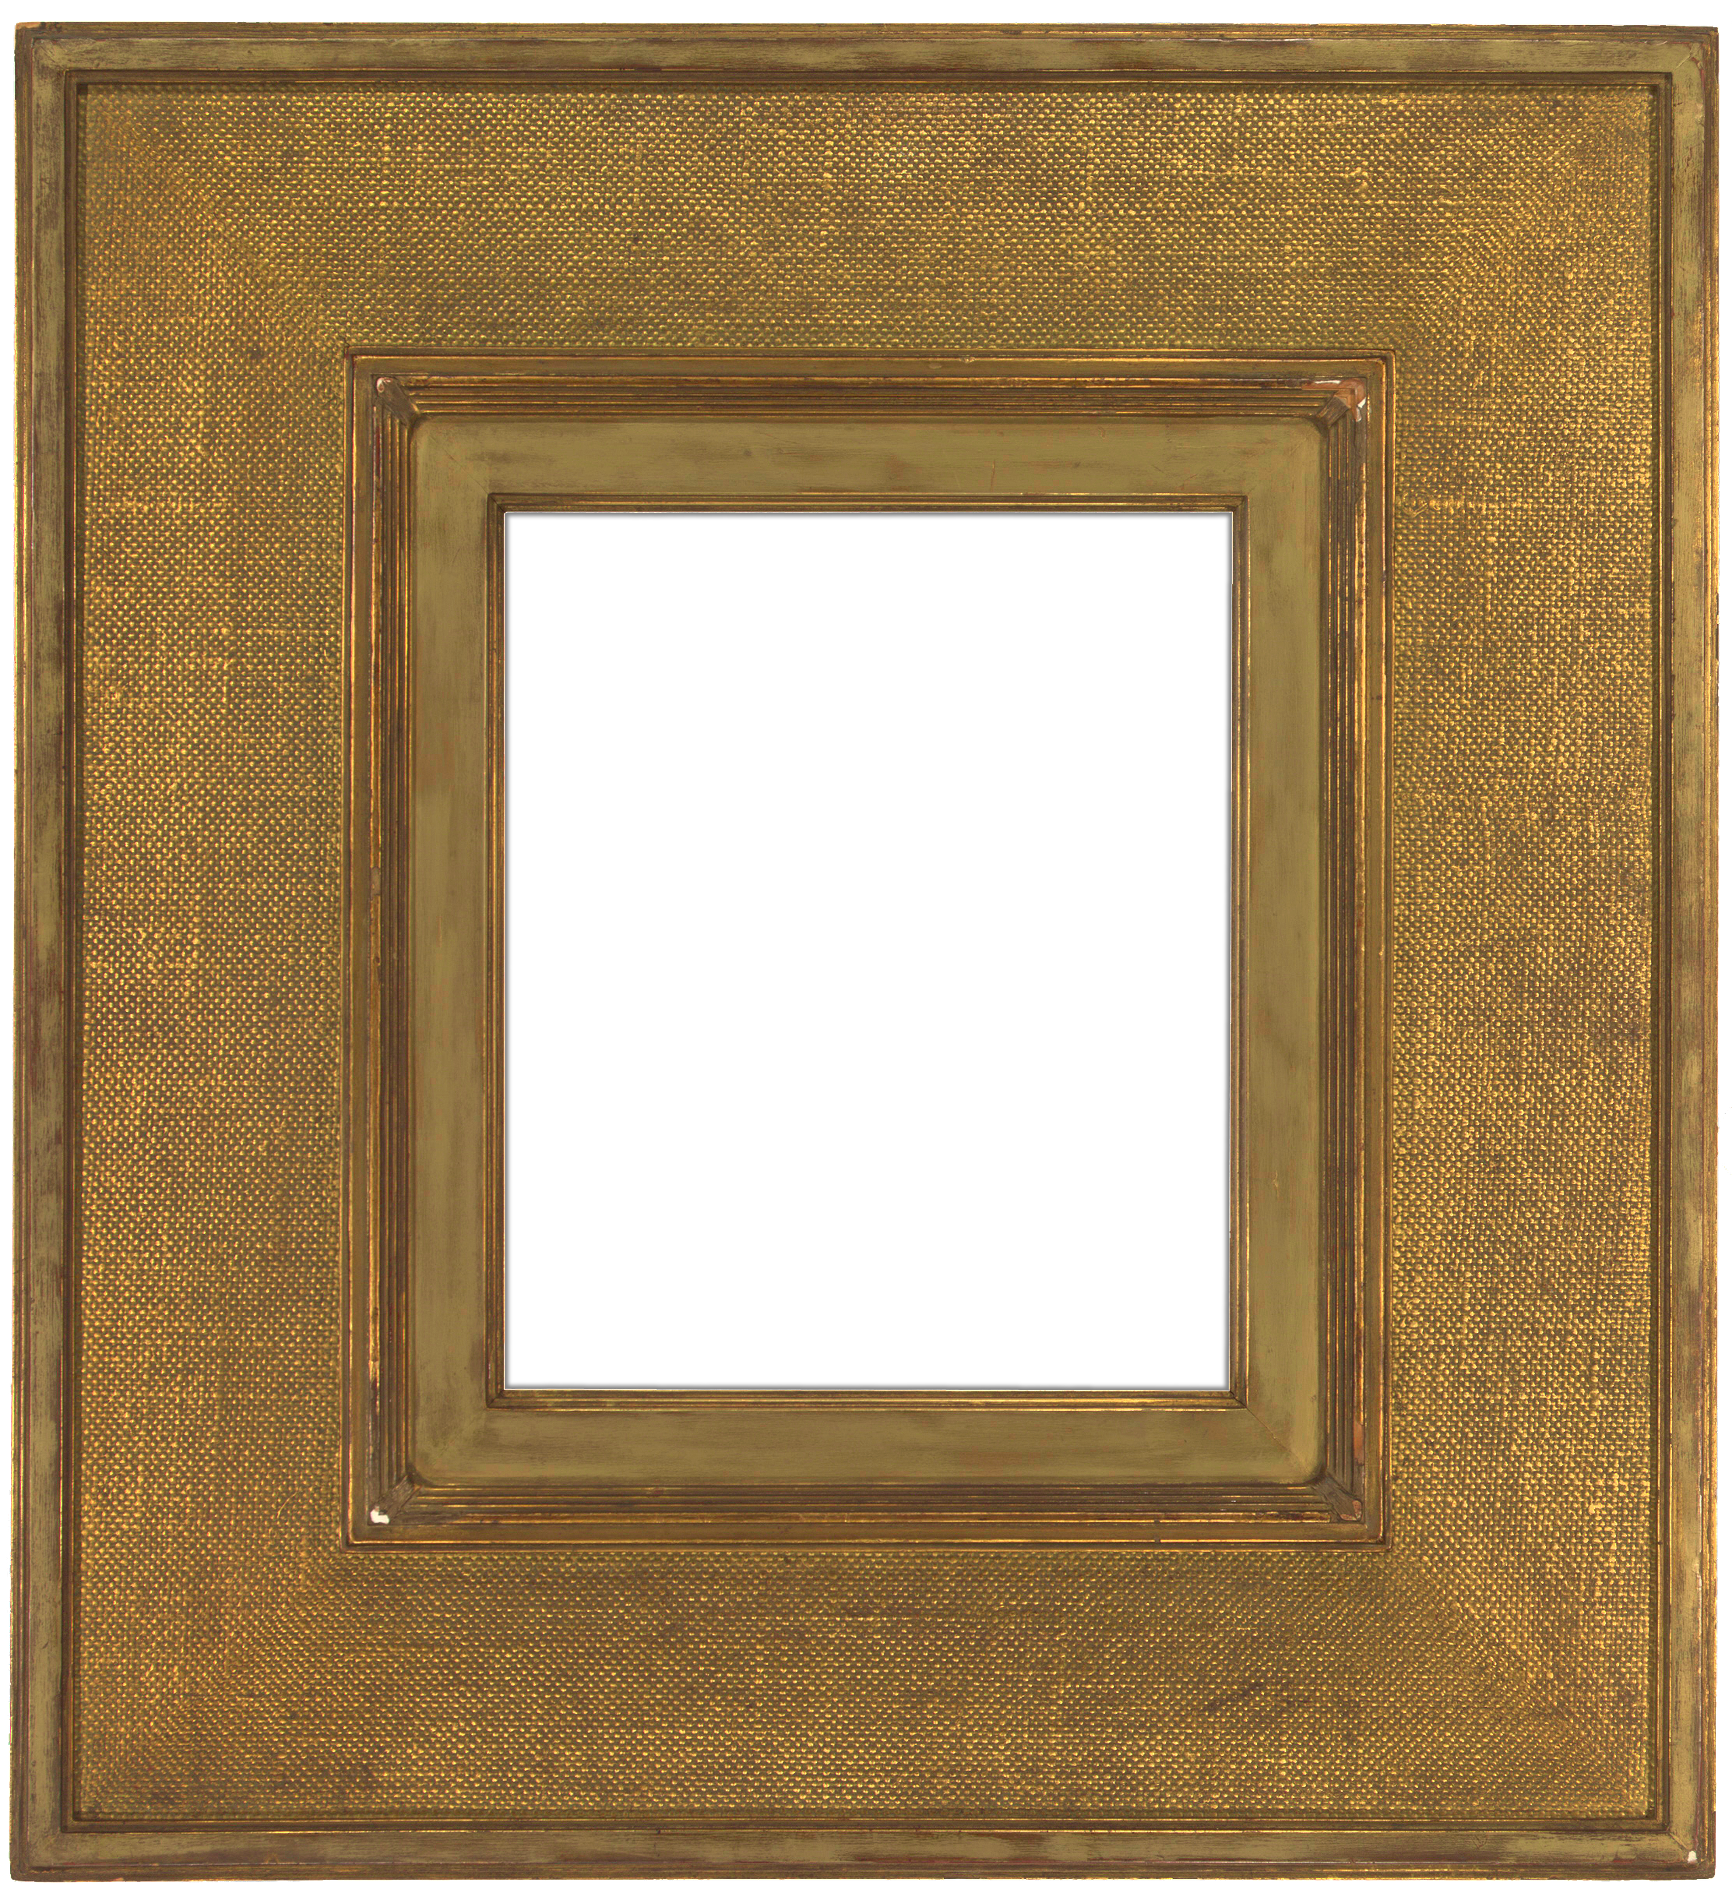 Featured Frame of the Week | PICTURE FRAMES | Pinterest | Frame ...